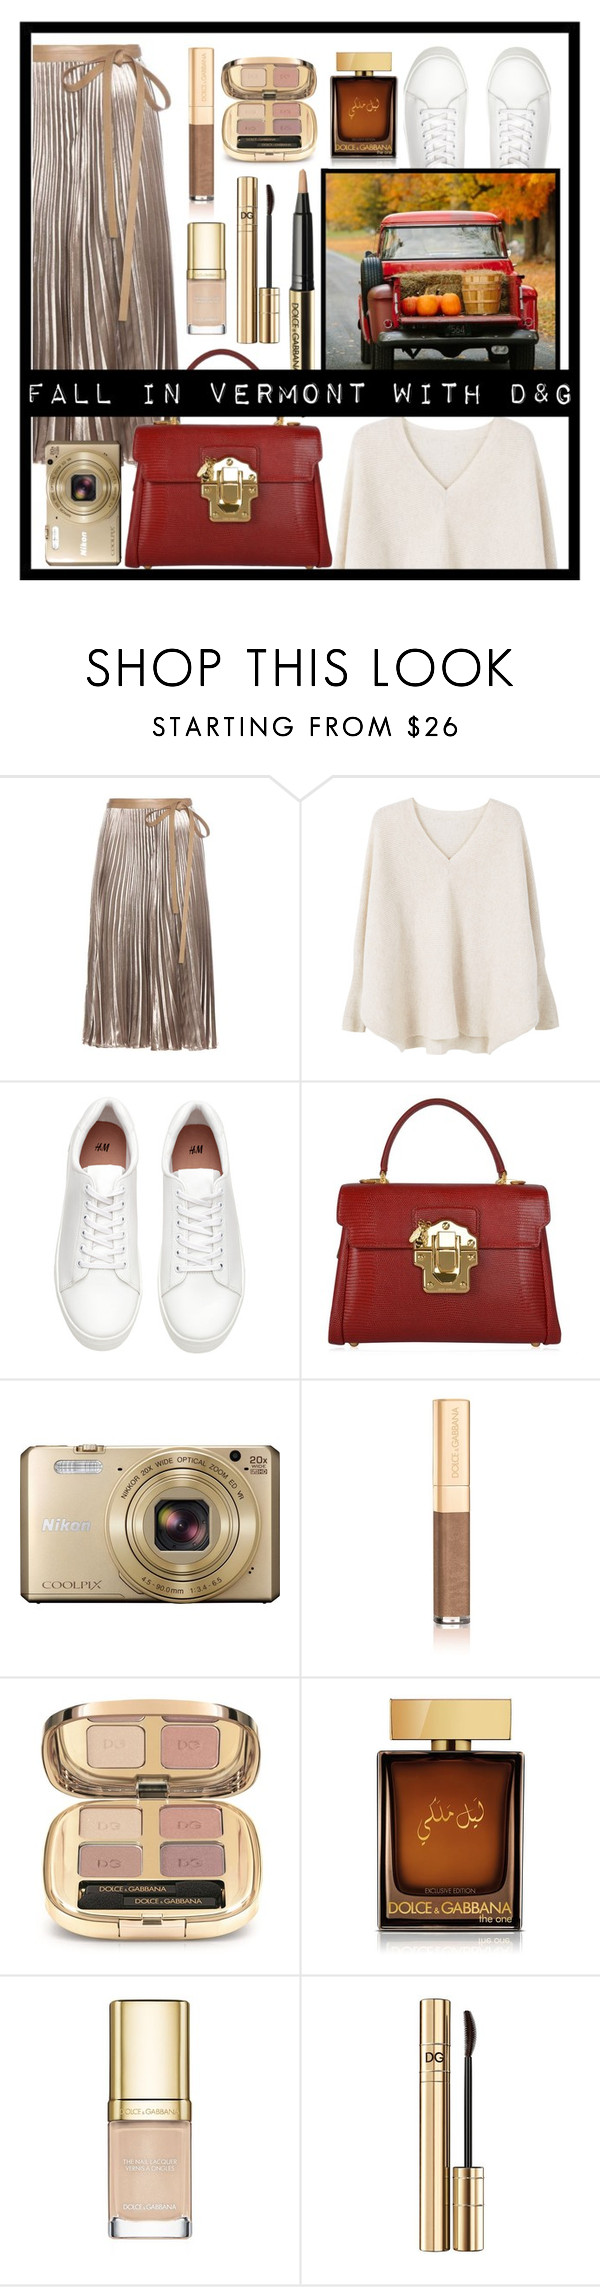 """fall in vermont"" by khavac ❤ liked on Polyvore featuring Valentino, MANGO, Dolce&Gabbana and Nikon"